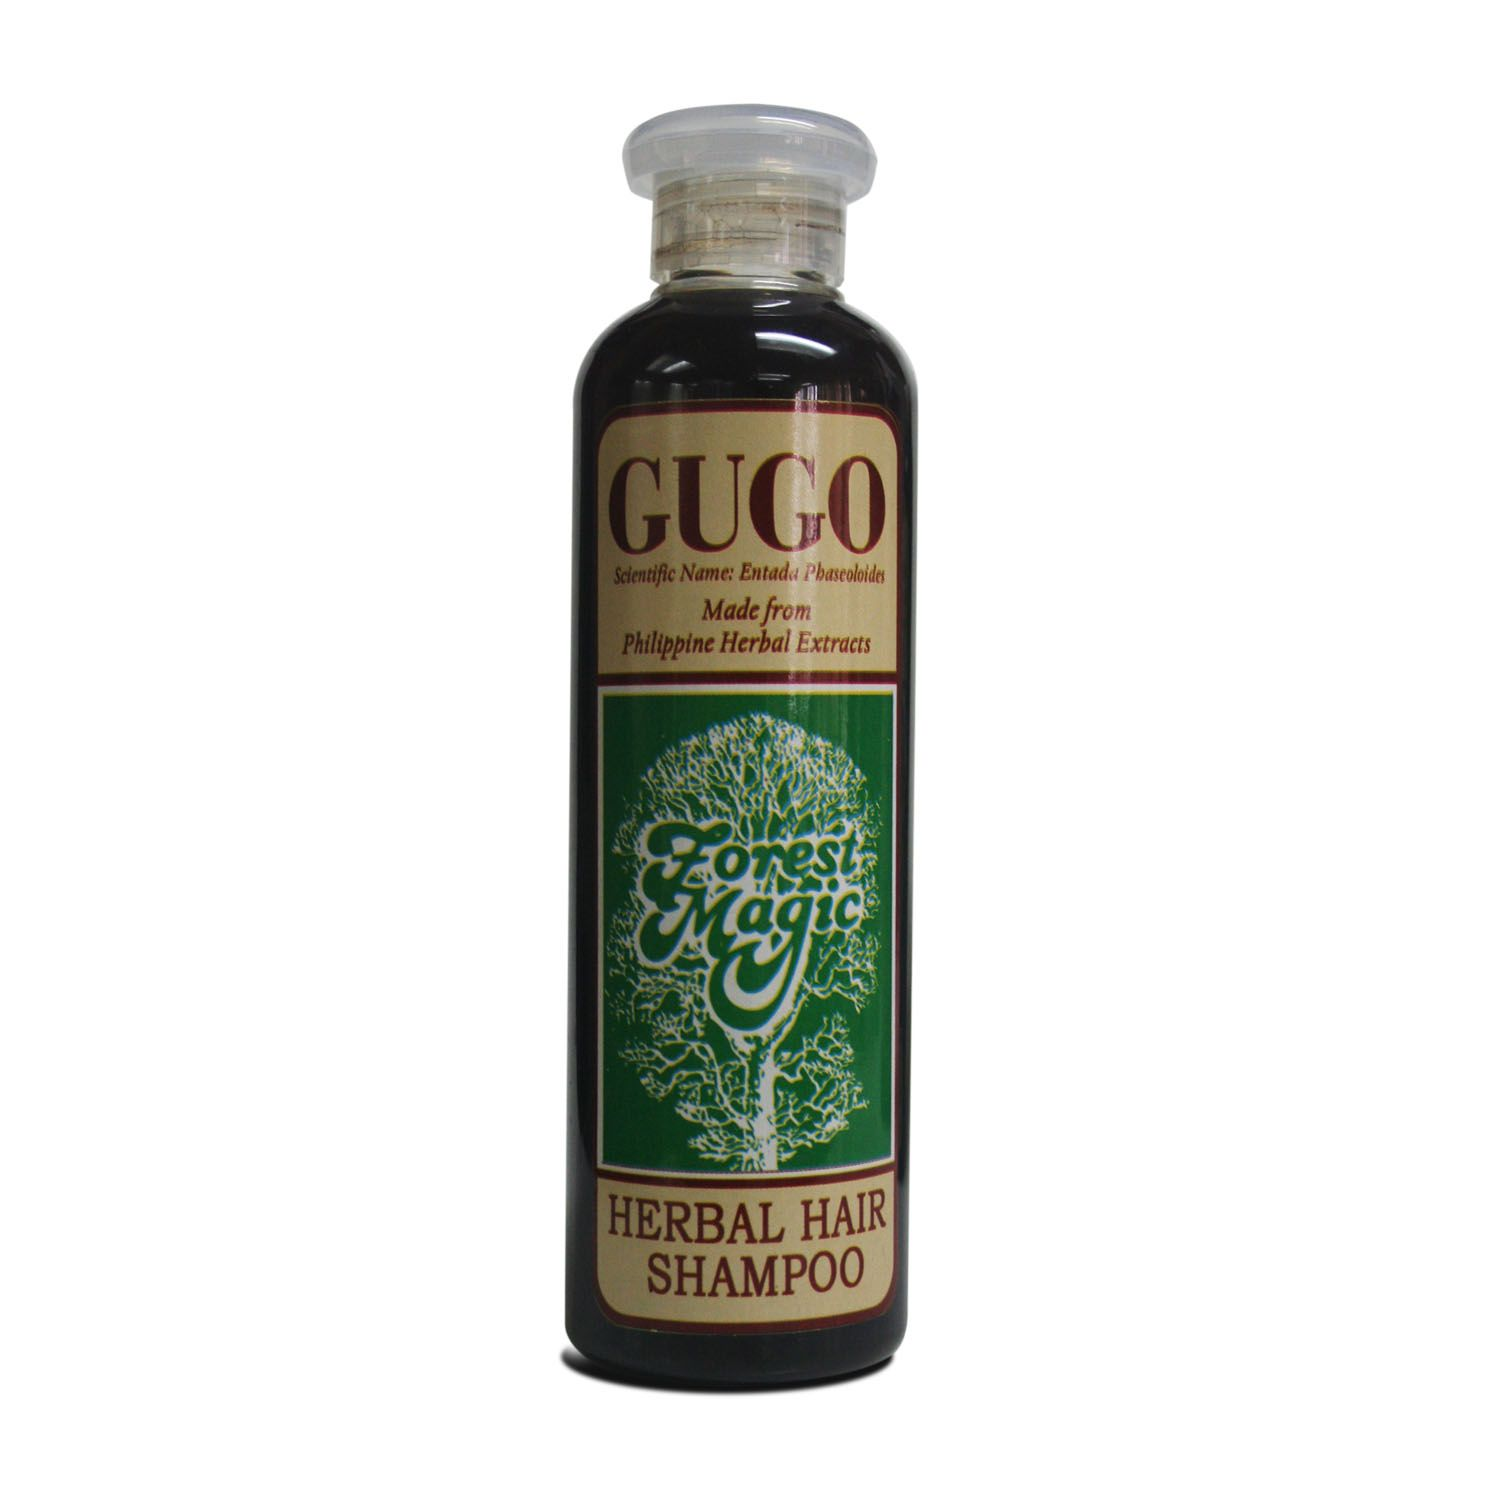 Herbal Gugo Hair Shampoo By Forest Magic I Have Only Been Able To